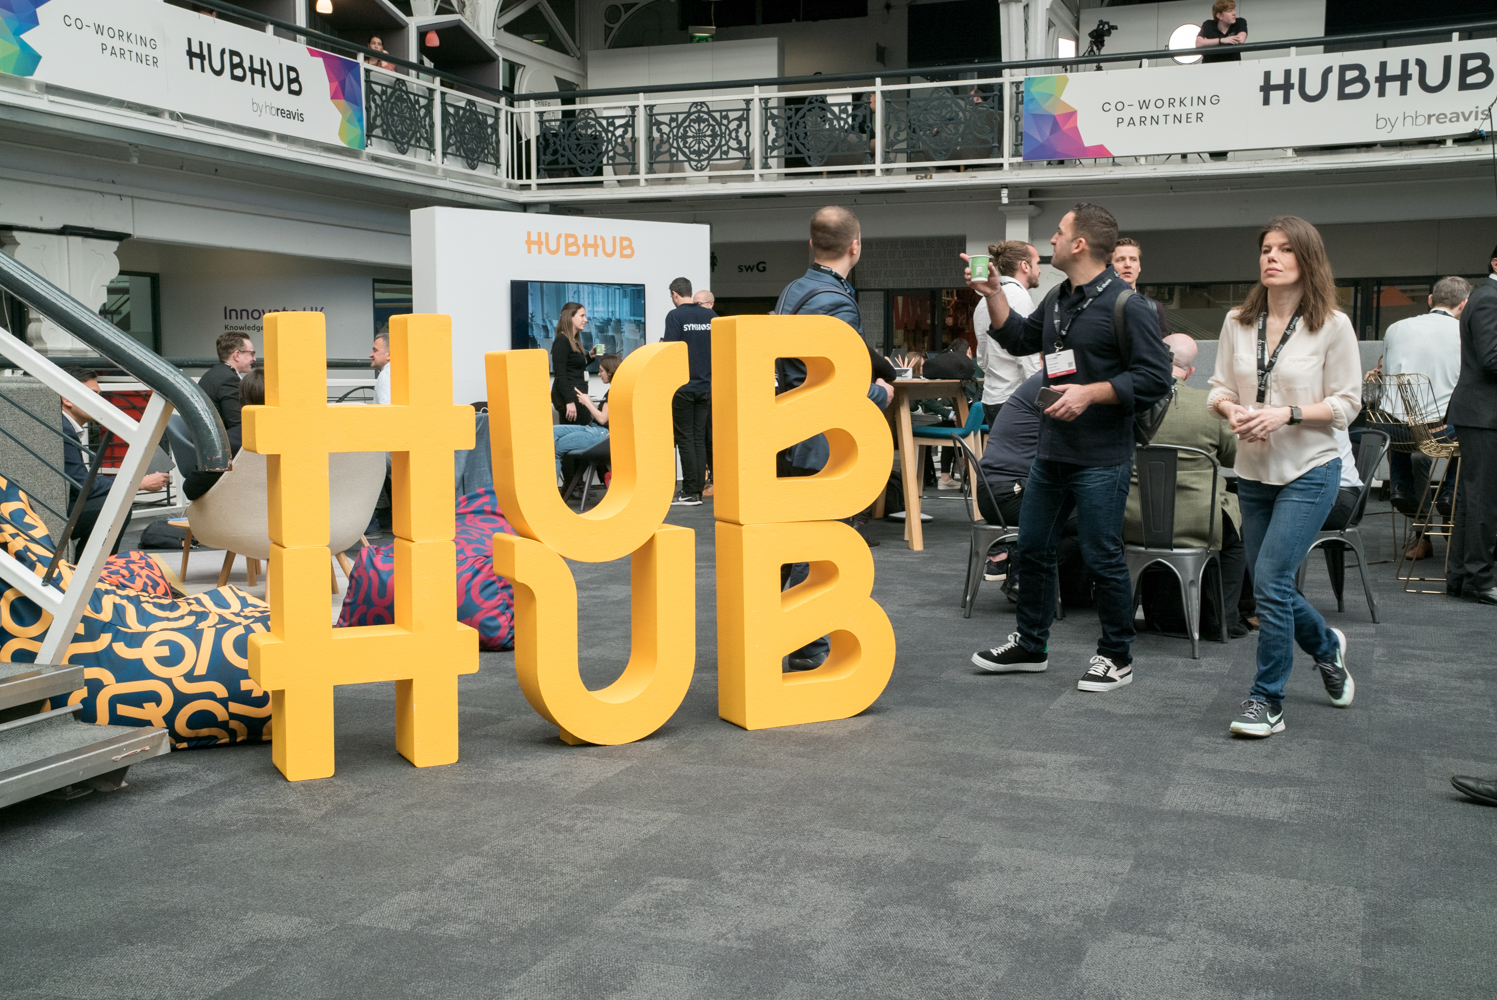 HUB HUB making an impact with large 3D letters!